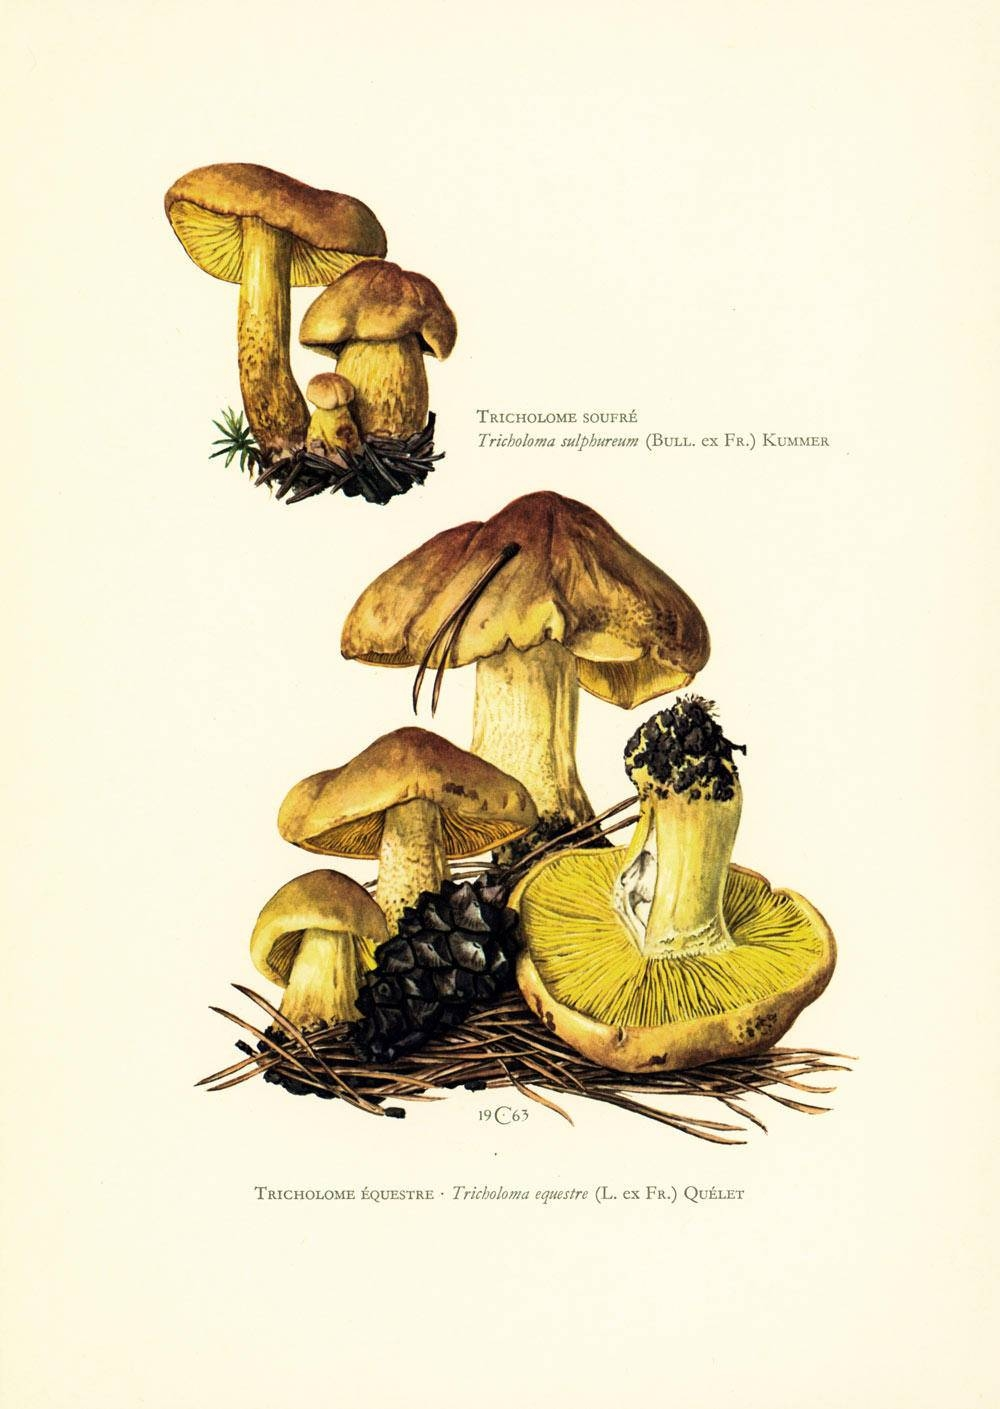 1962 Vintage Print Mushrooms Wall Art Home Decor Mycology Pertaining To Best And Newest Mushroom Wall Art (View 15 of 20)